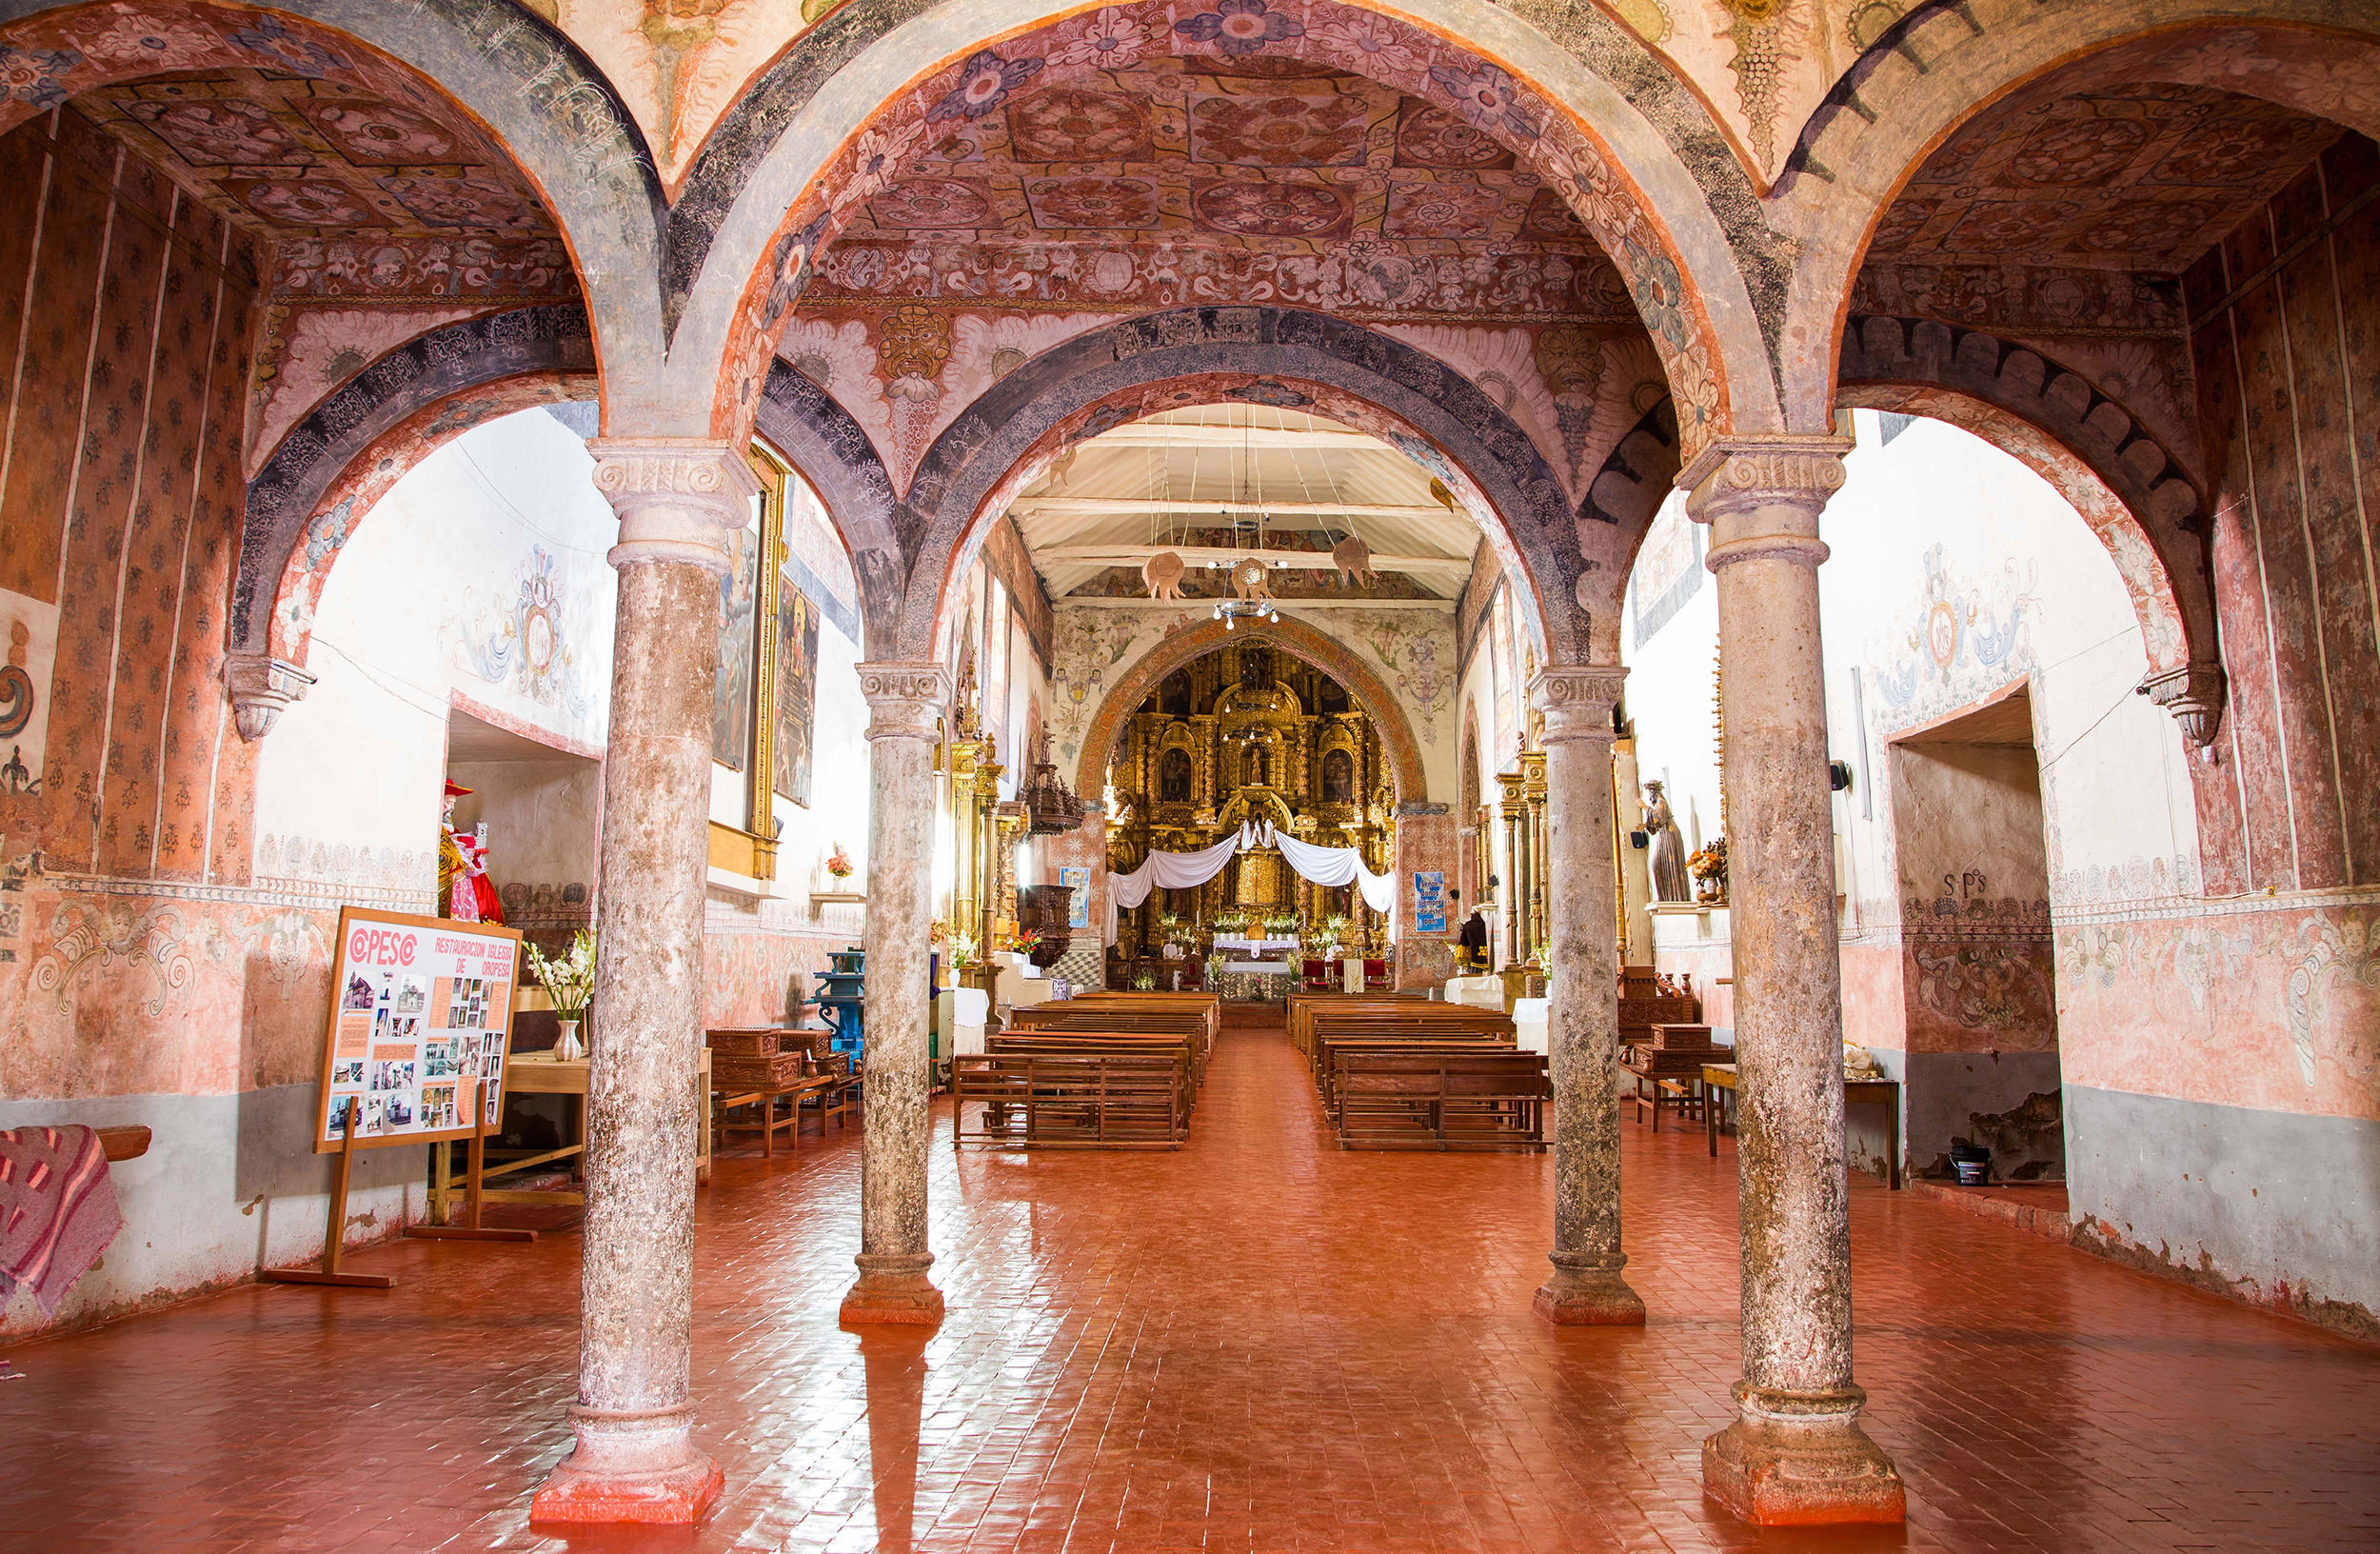 Fig. 15 Interior view of the Church of Oropesa, murals from late 17th century, Quispicanchi Province. Photo by Raúl Montero Quispe.